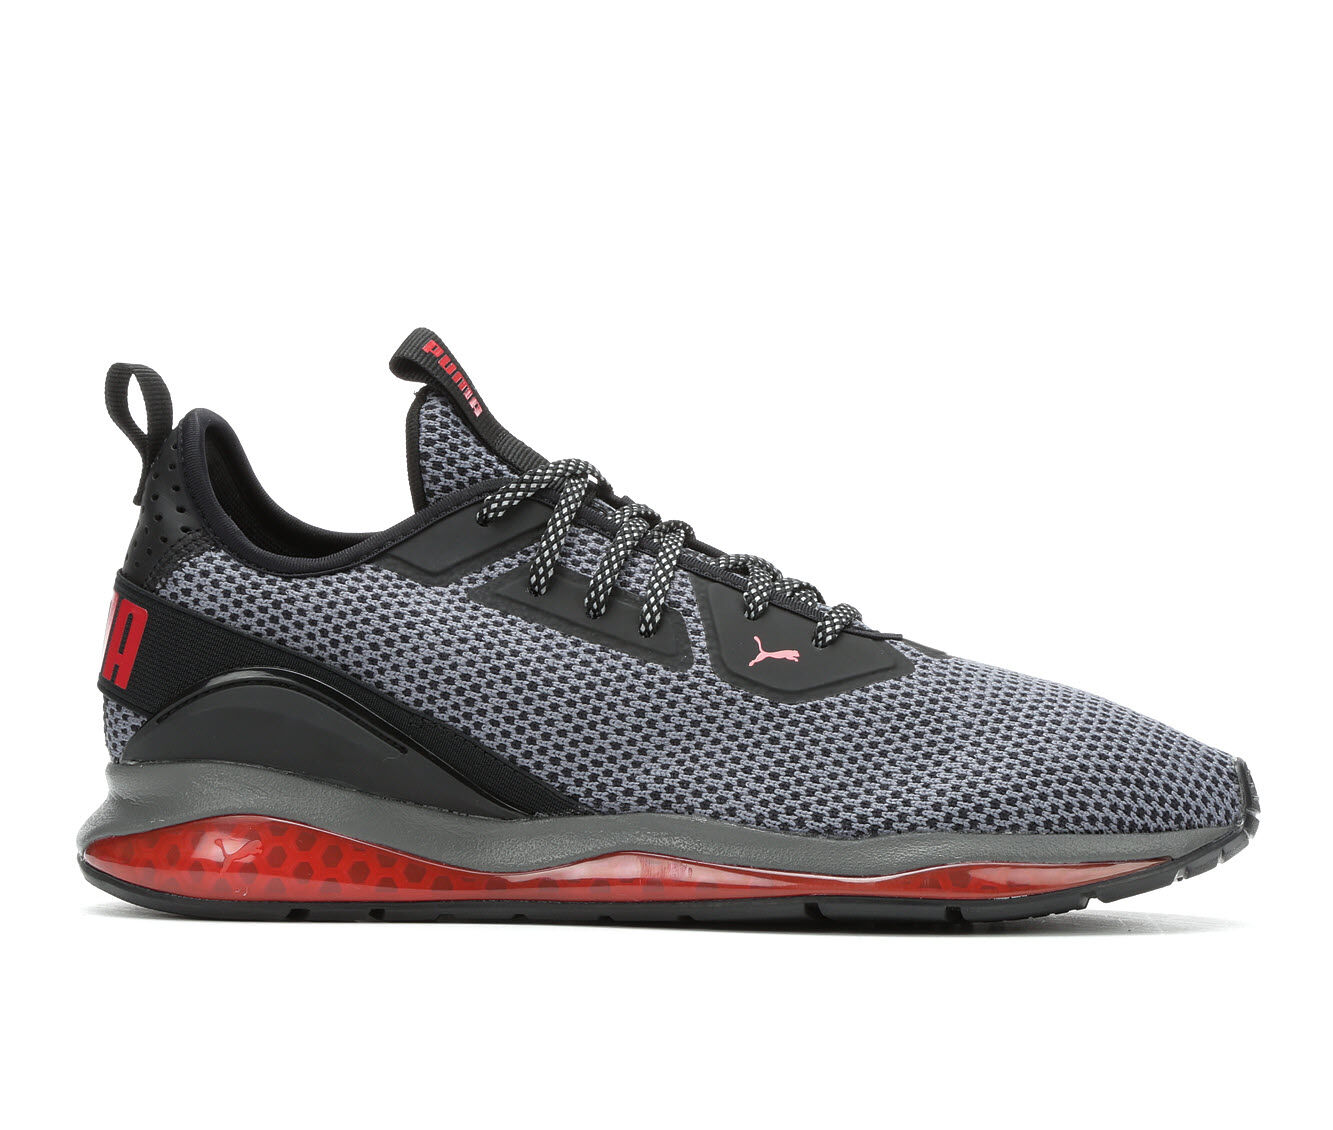 Men's Puma Cell Descend Sneakers Gry/Blk/Red